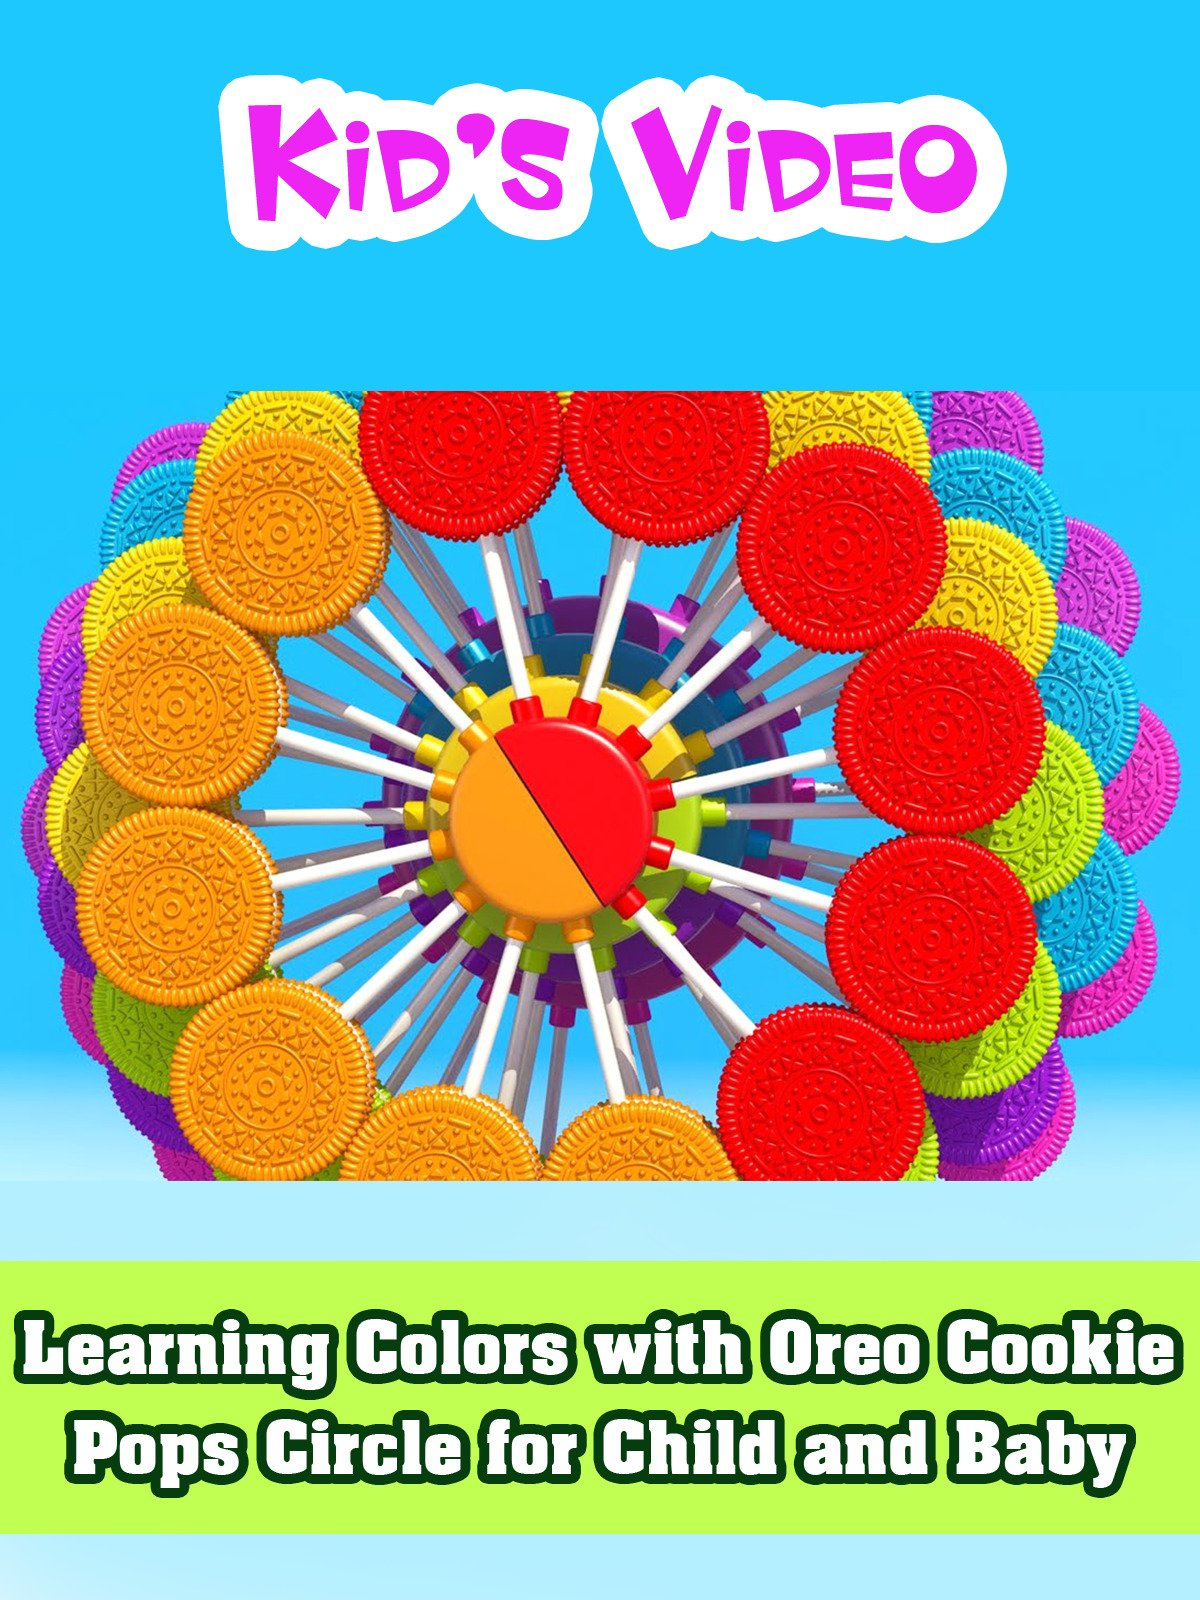 Learning Colors with Oreo Cookie Pops Circle for Child and Baby